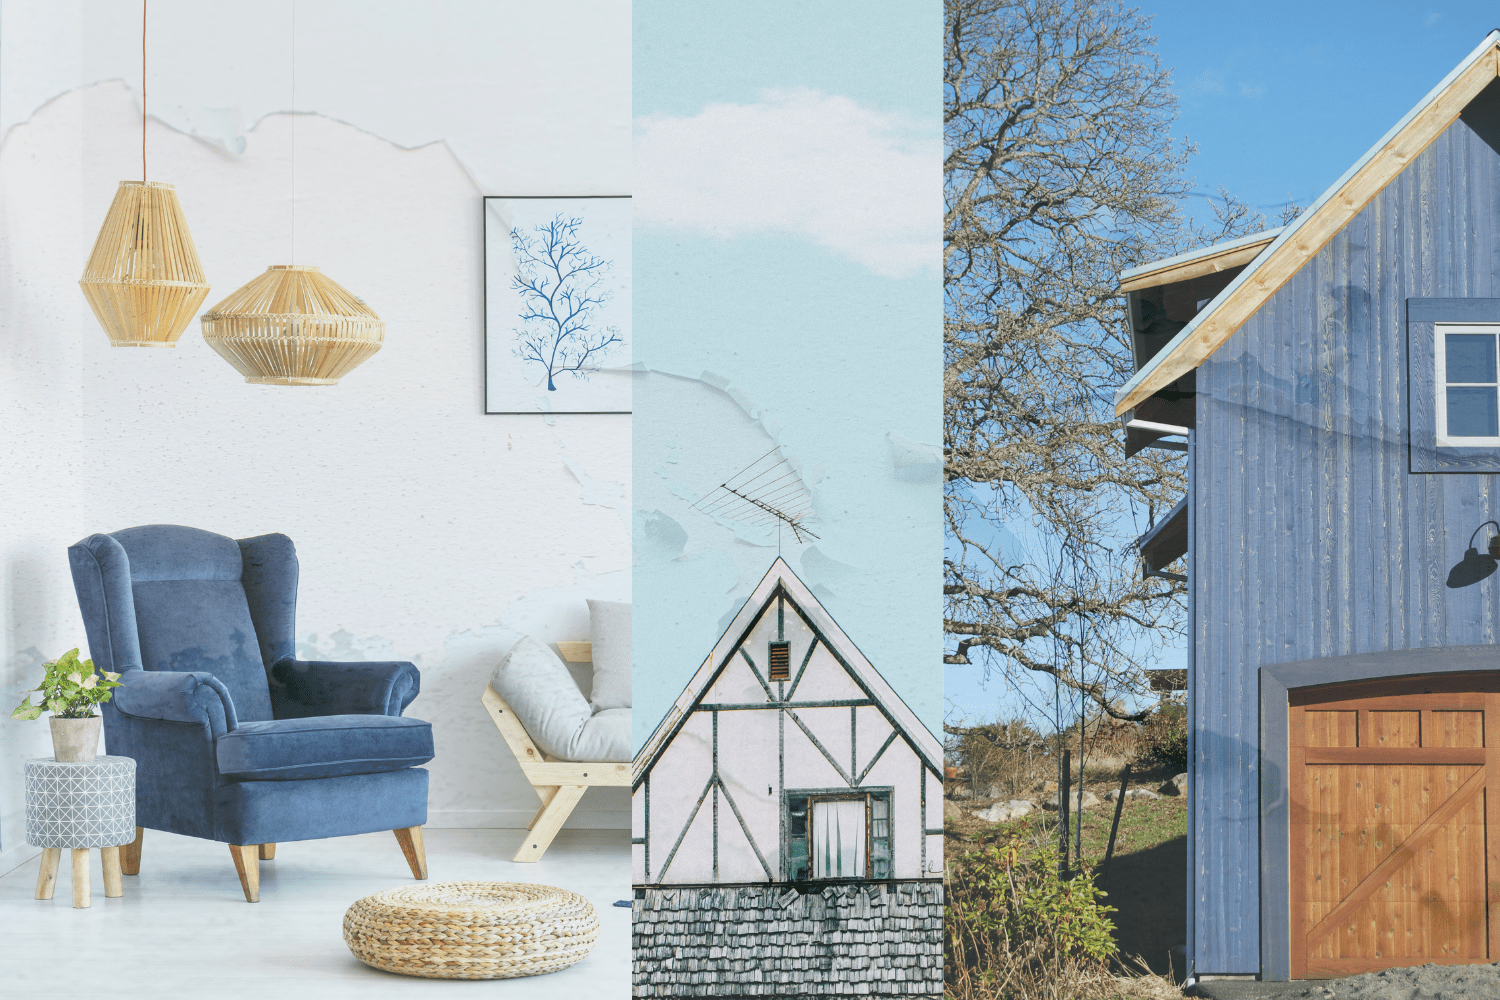 Paint Trends for Blue & Green Colors